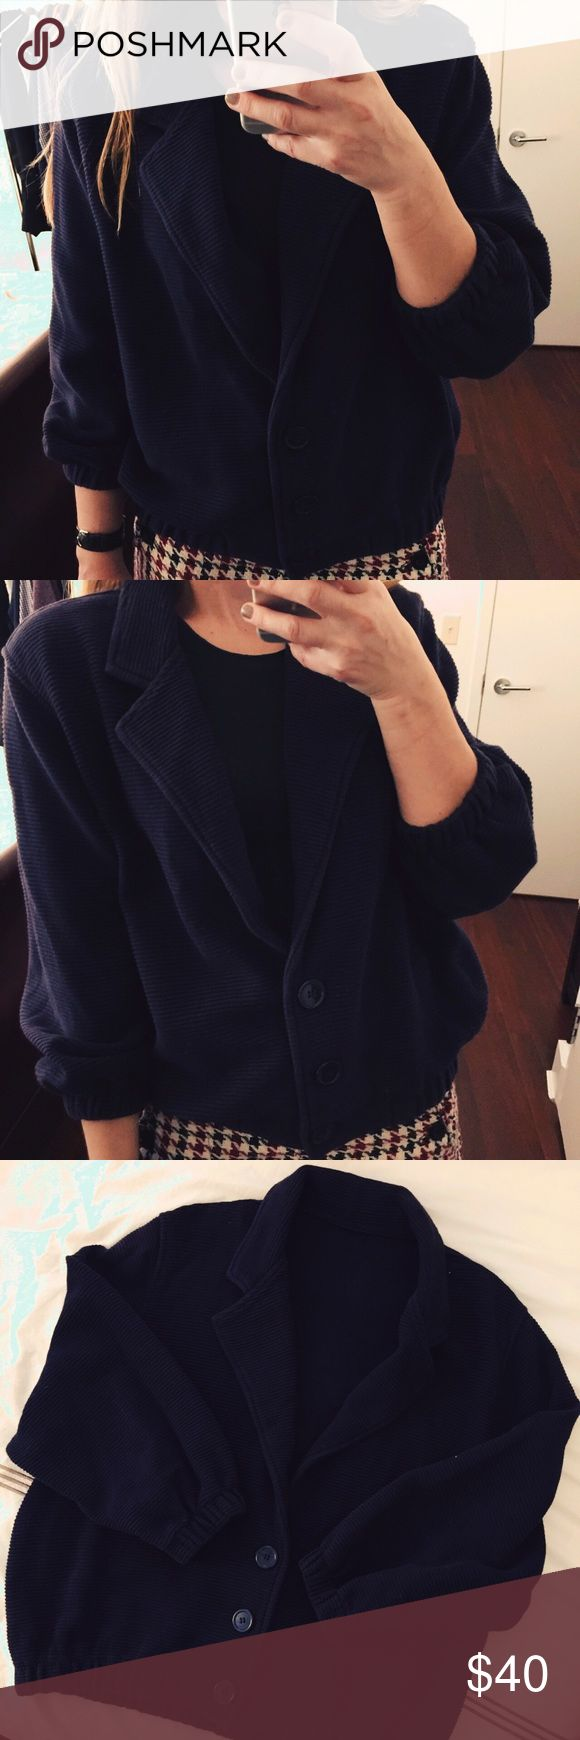 Vintage American Apparel Top Vintage American Apparel cardigan jacket/blazer in navy blue. This top has 3/4 length sleeves and 3 buttons. So so cute and fashionable! In like new condition! American Apparel Jackets & Coats Blazers